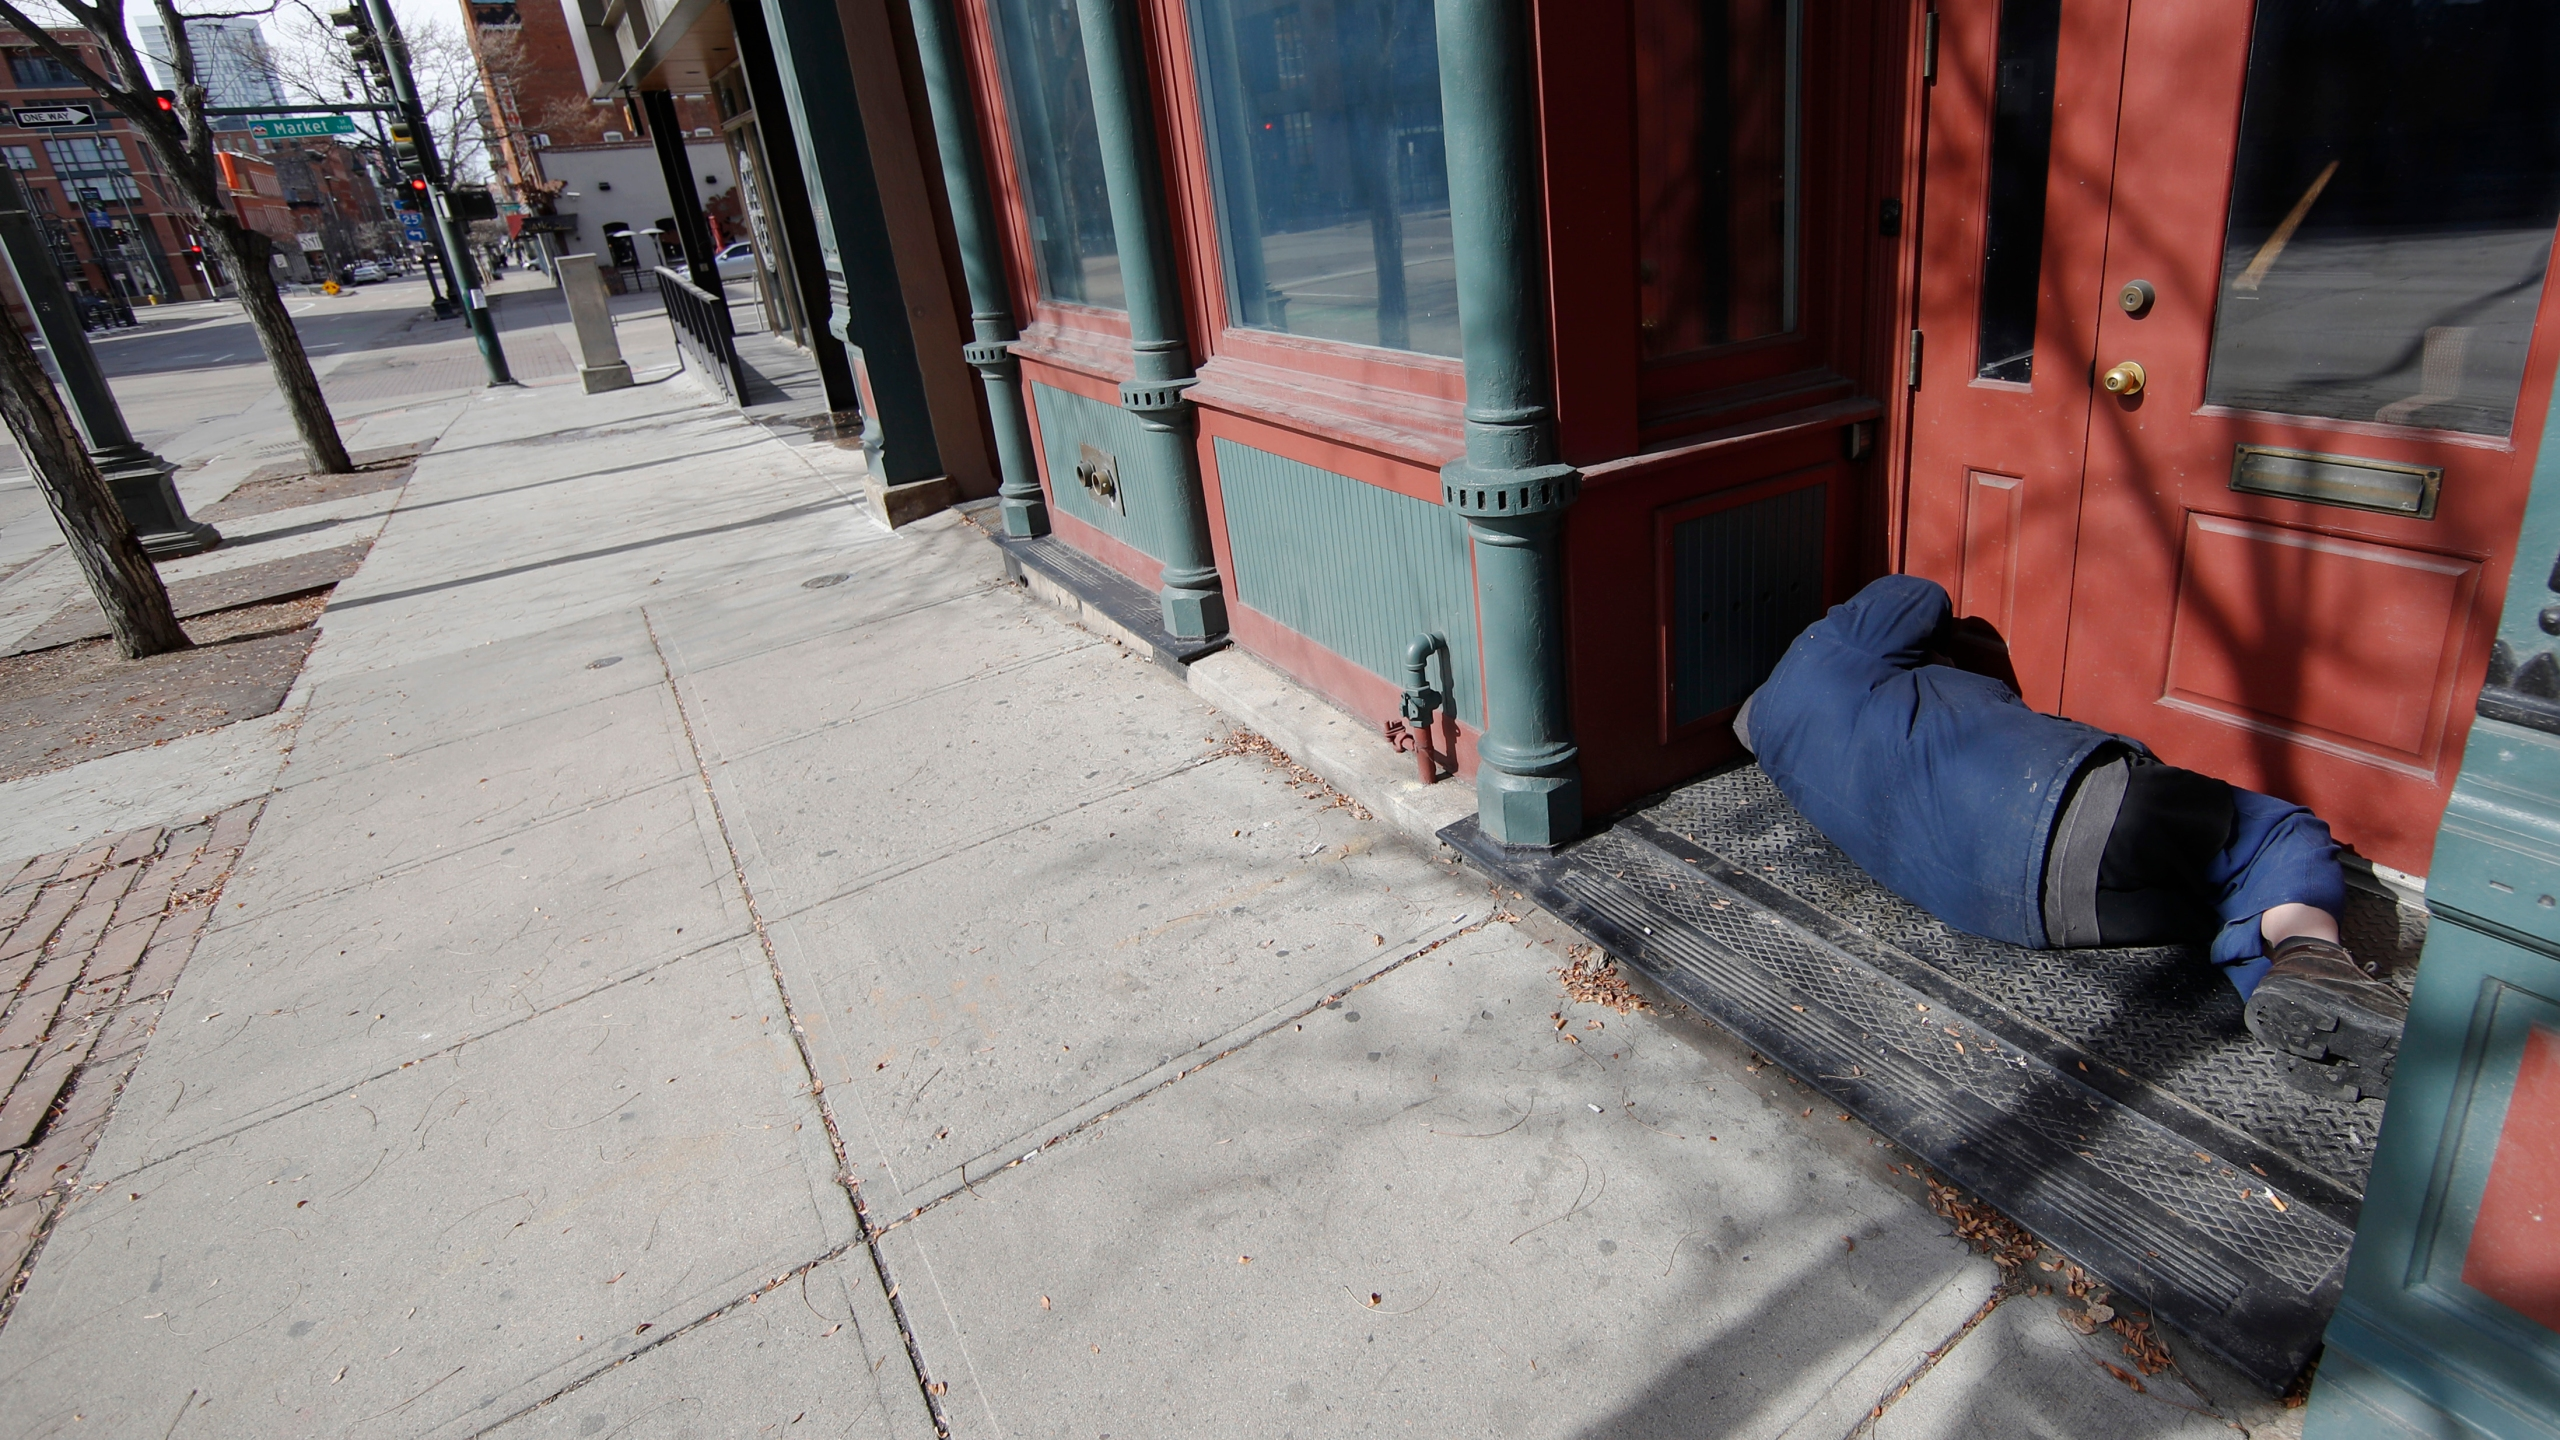 A homeless man sleeps in the doorway of an empty storefront as residents deal with the spread of coronavirus Saturday, March 21, 2020, in Denver.(AP Photo/David Zalubowski)